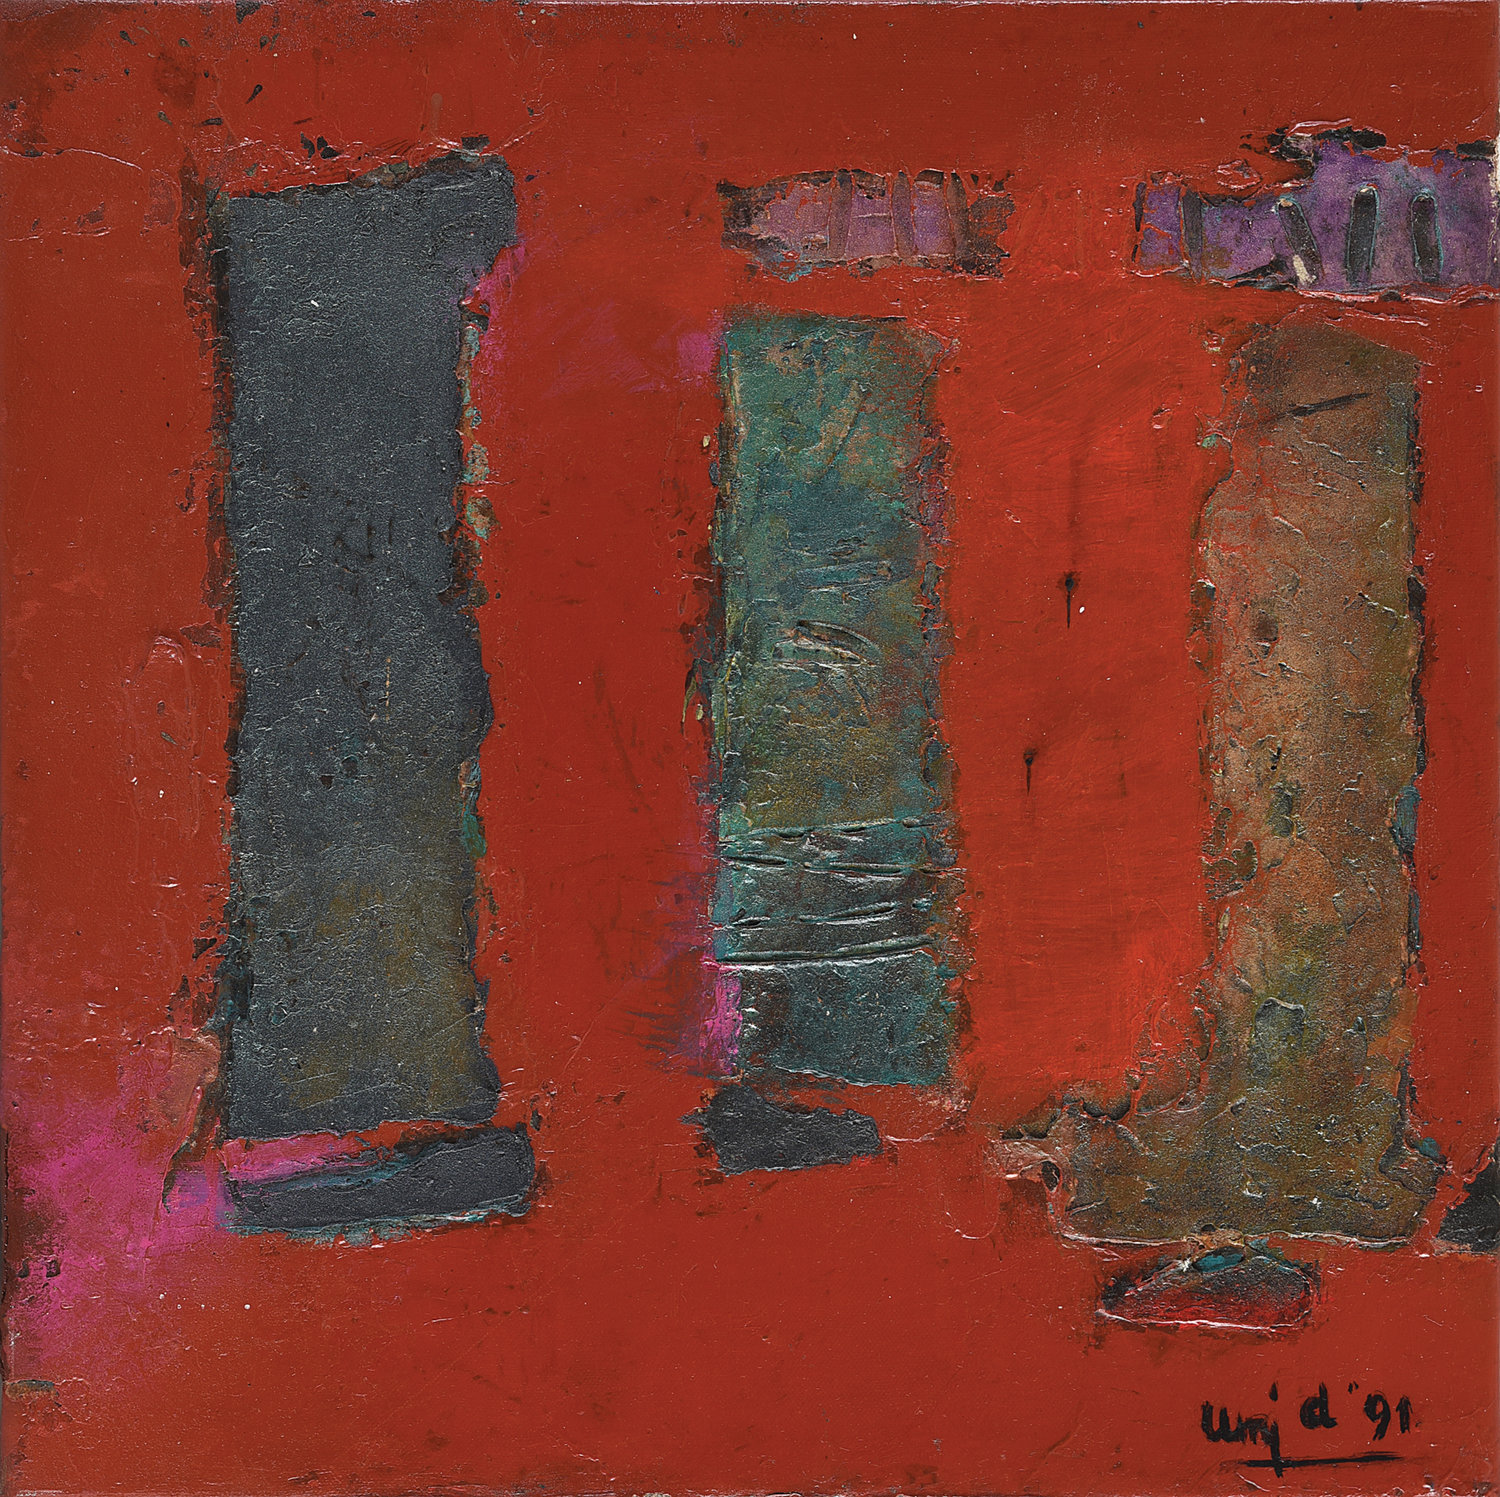 Umi Dachlan, Three Pillars of Abstraction, oil and mixed media on canvas, 40 x 40 cm, 1991